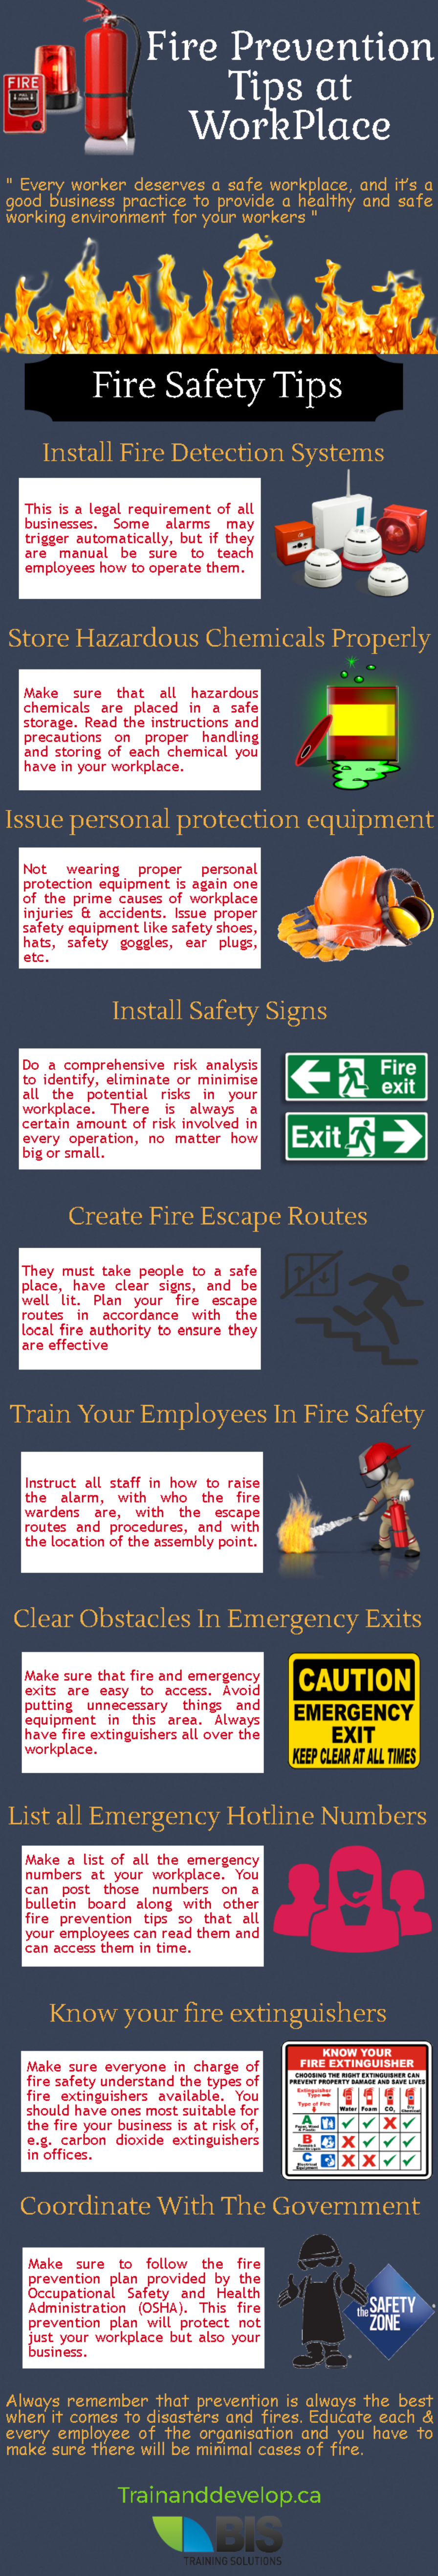 Fire prevention tips at workplace fireprevention safety